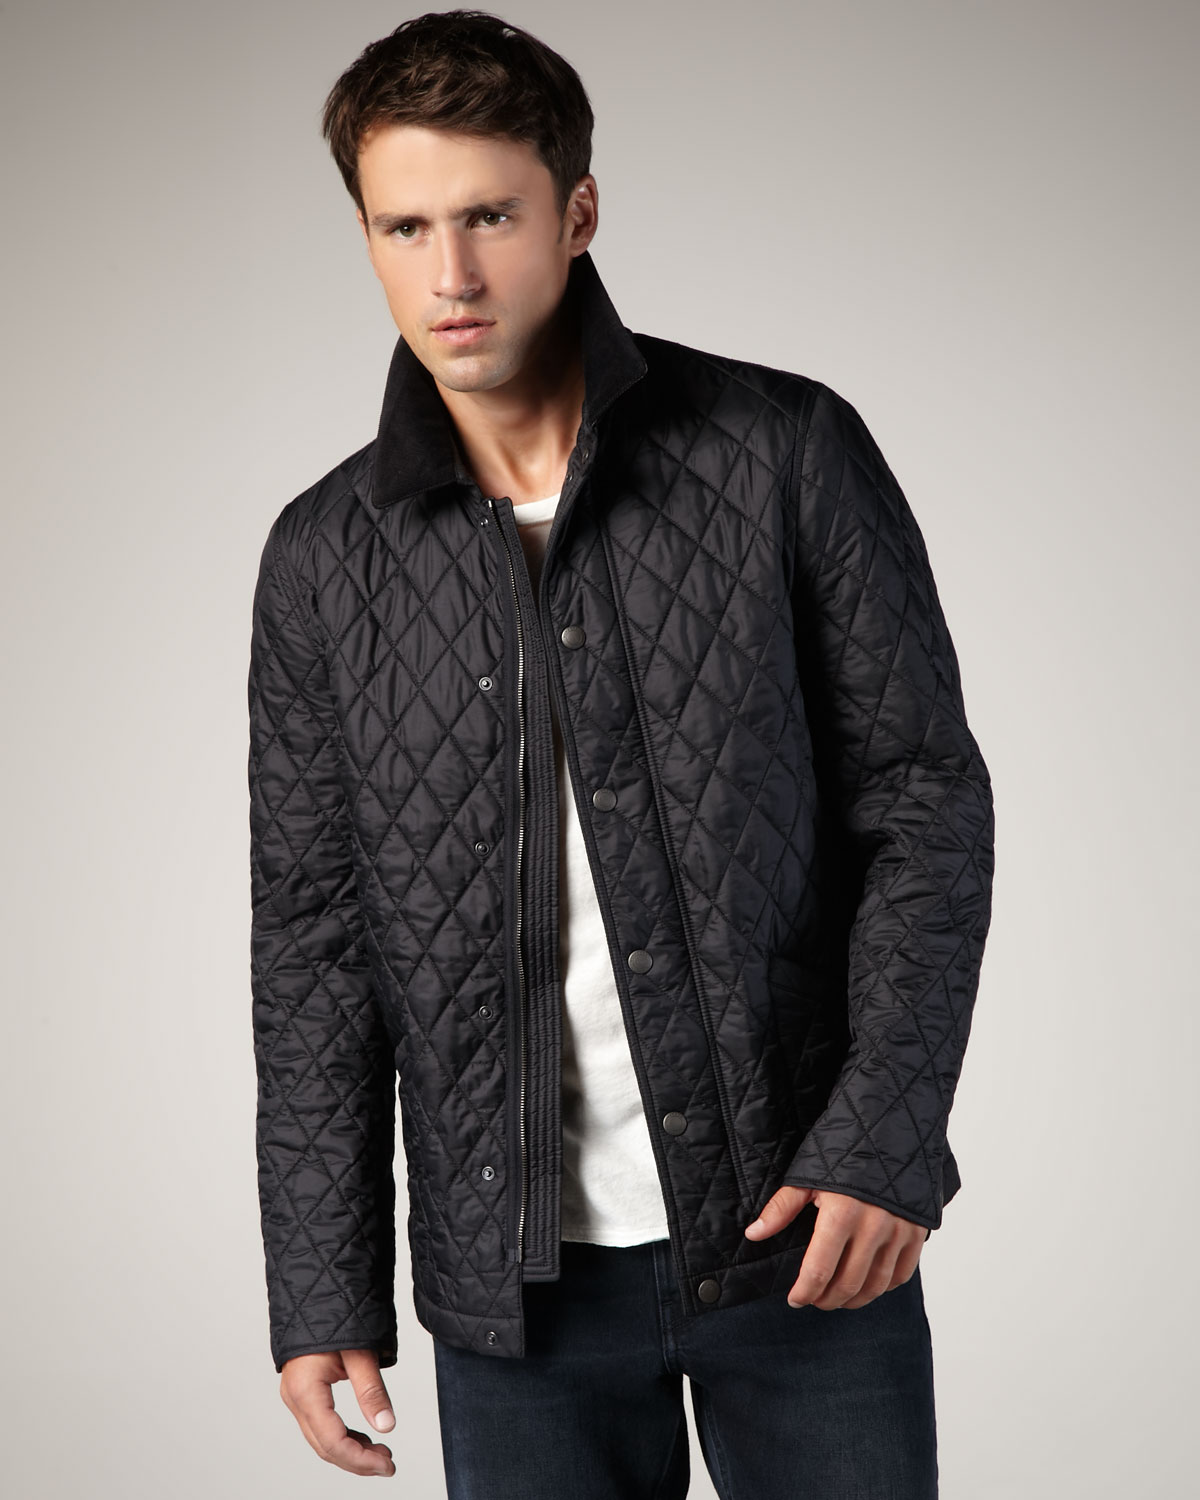 Lyst - Burberry brit Classic Quilted Jacket in Black for Men : quilted jacket for mens - Adamdwight.com